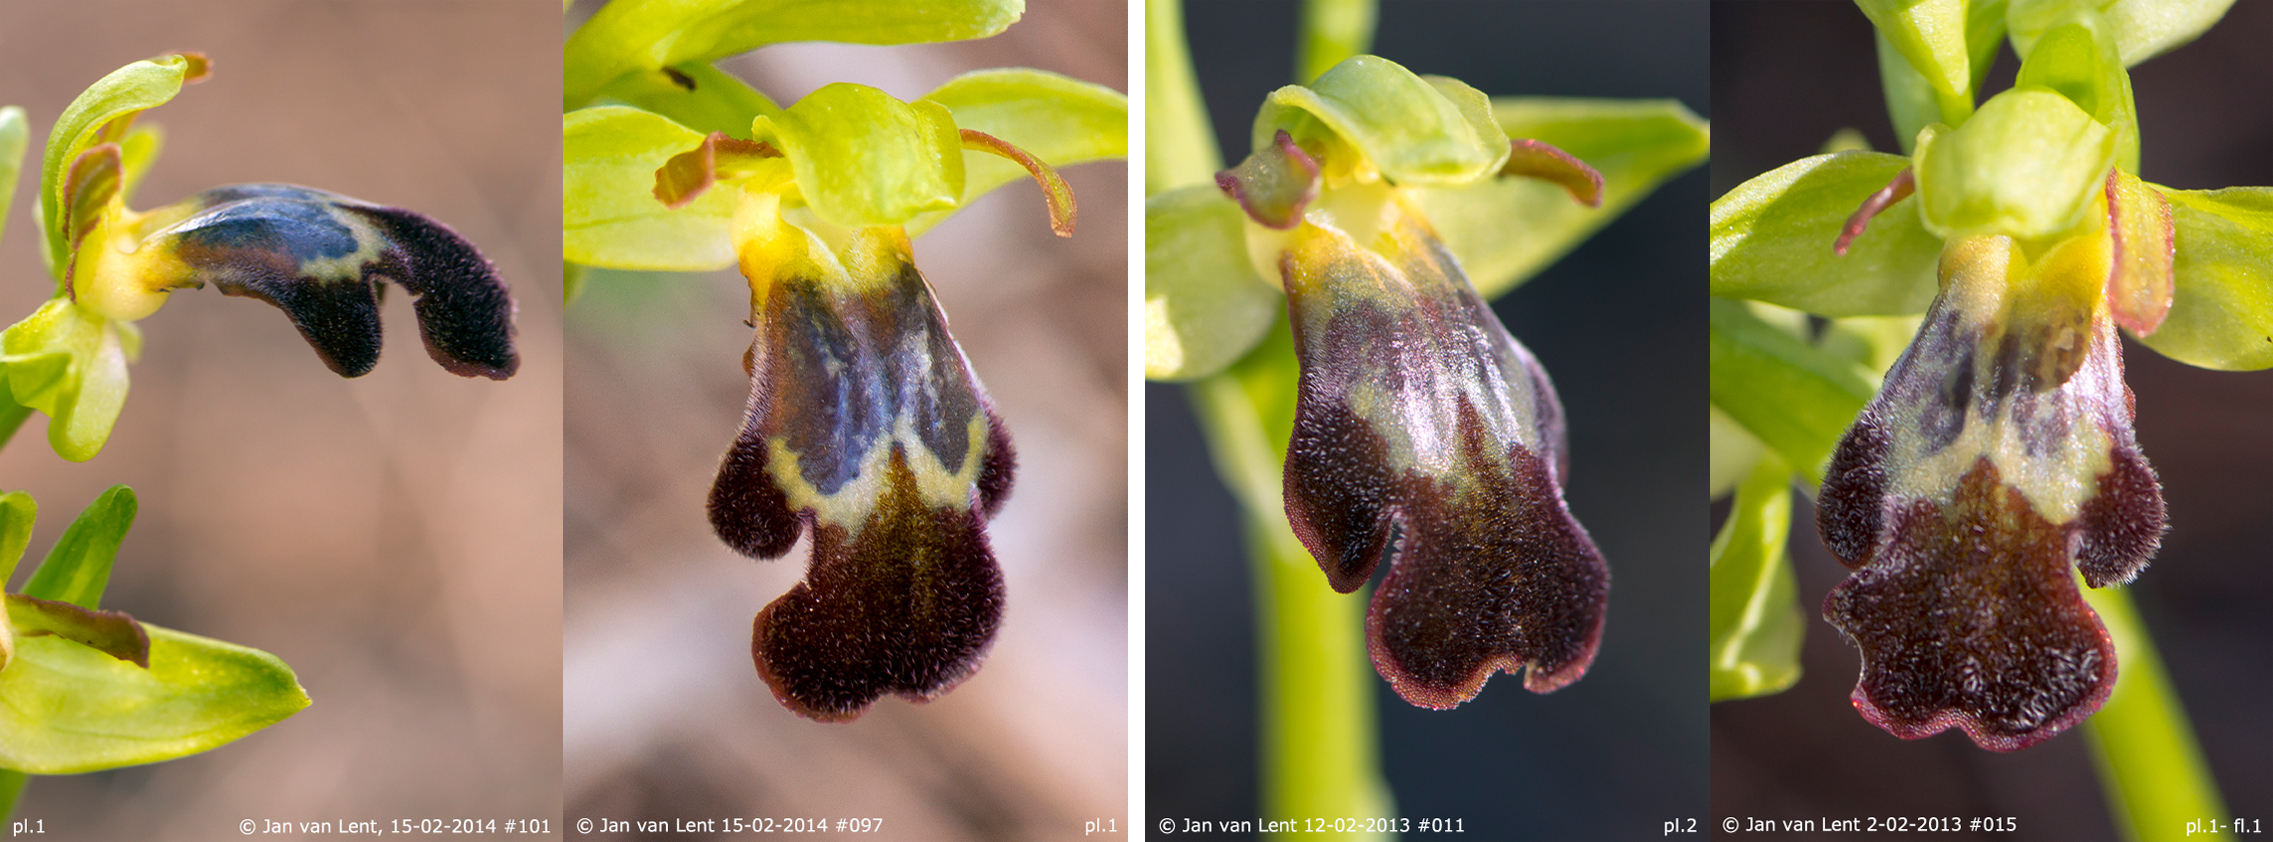 Pl. 1: Ophrys sancti-isidorii on 15-2-14 #101, #097 & pl.2 and pl.1 on 12-2-13 #011, #015.